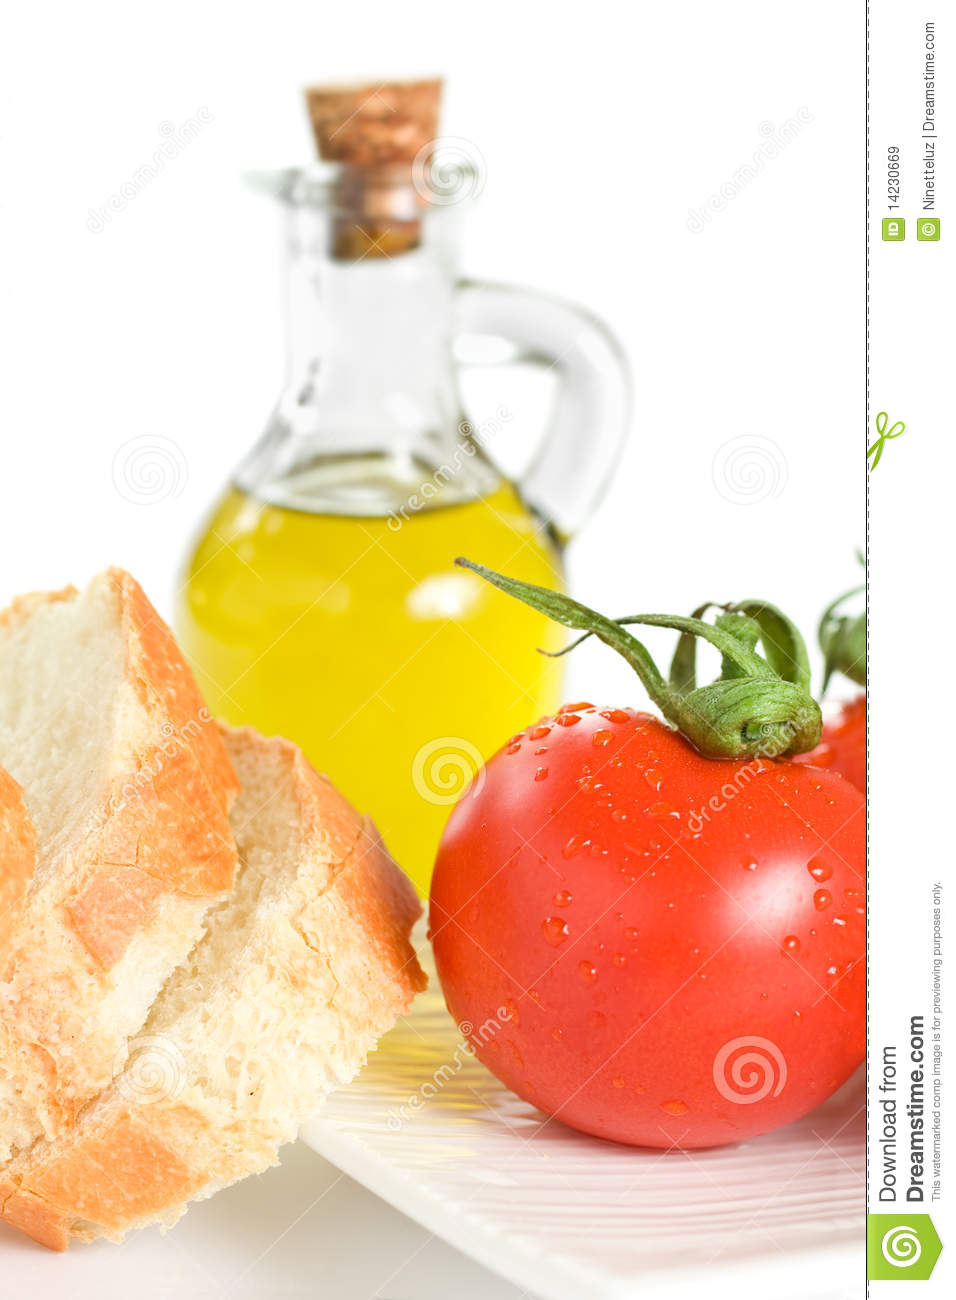 Tomato Bread And Olive Oil Royalty Free Stock Images - Image: 14230669